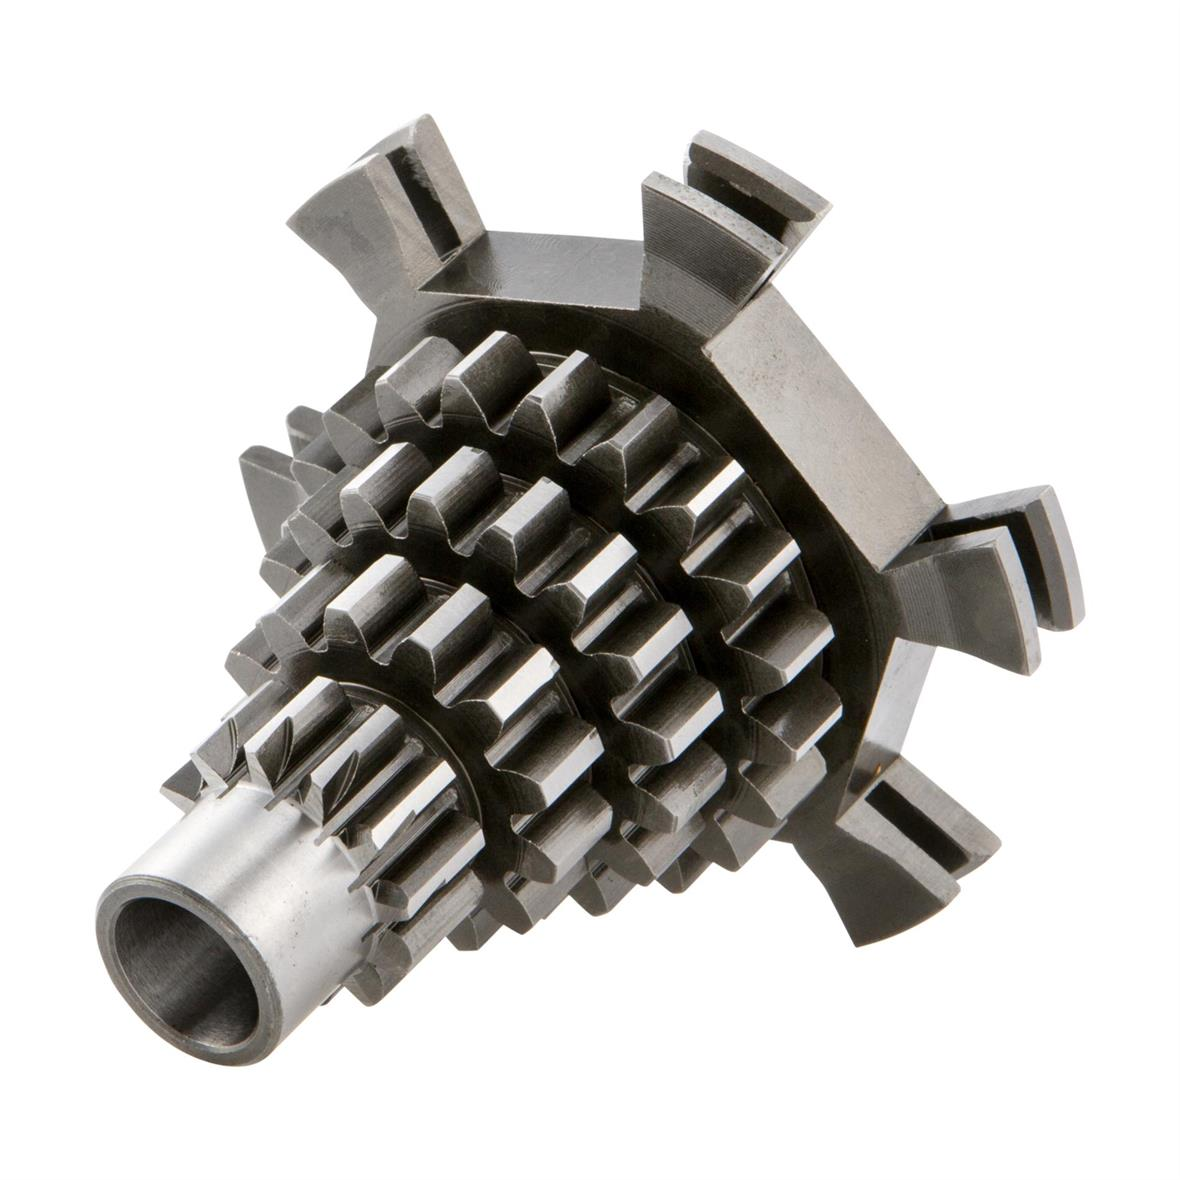 "Product Image for 'Input Shaft Assembly 12-13-17-20 teeth BENELLI ""short 4th gear""Title'"